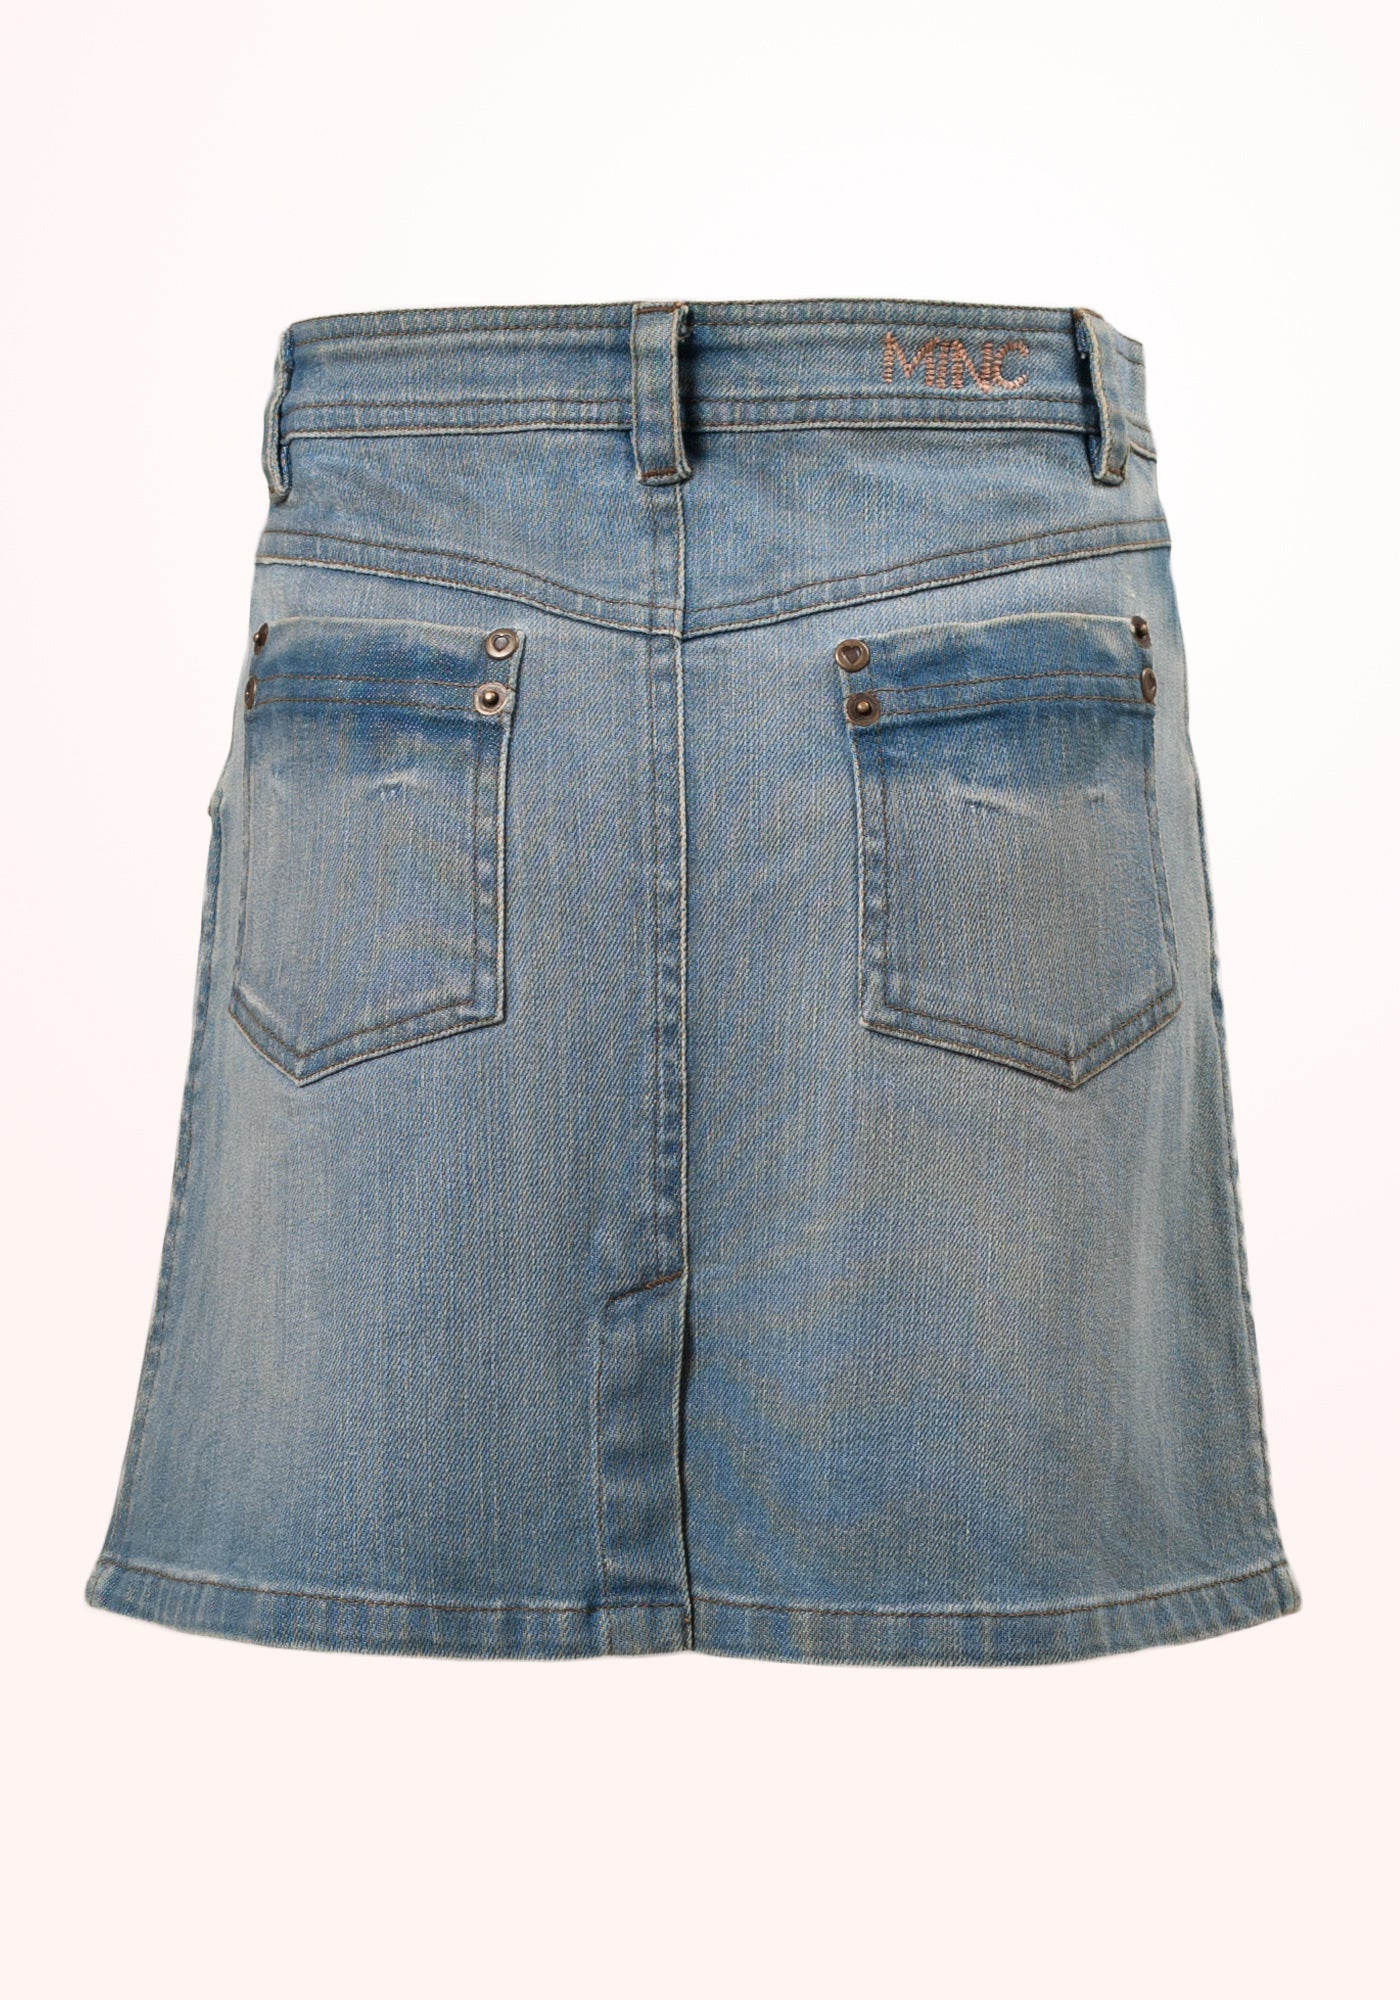 Texas Girls Skirt in Blue Denim - MINC ecofashion